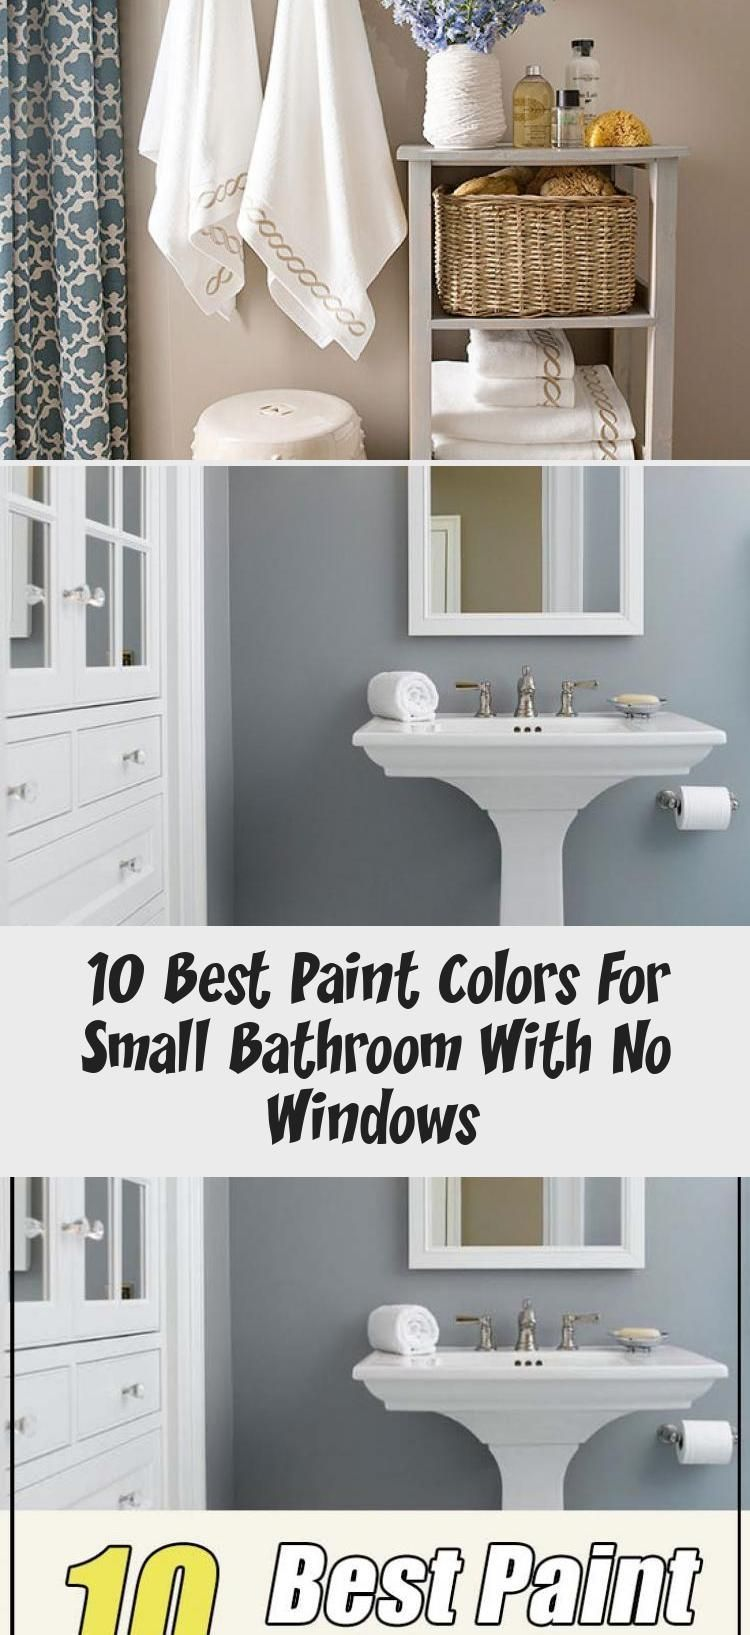 10 Best Paint Colors For Small Bathroom With No Windows Bathroom Neutralbathroomcolo In 2020 Small Bathroom Colors Small Bathroom Paint Colors Yellow Bathroom Walls